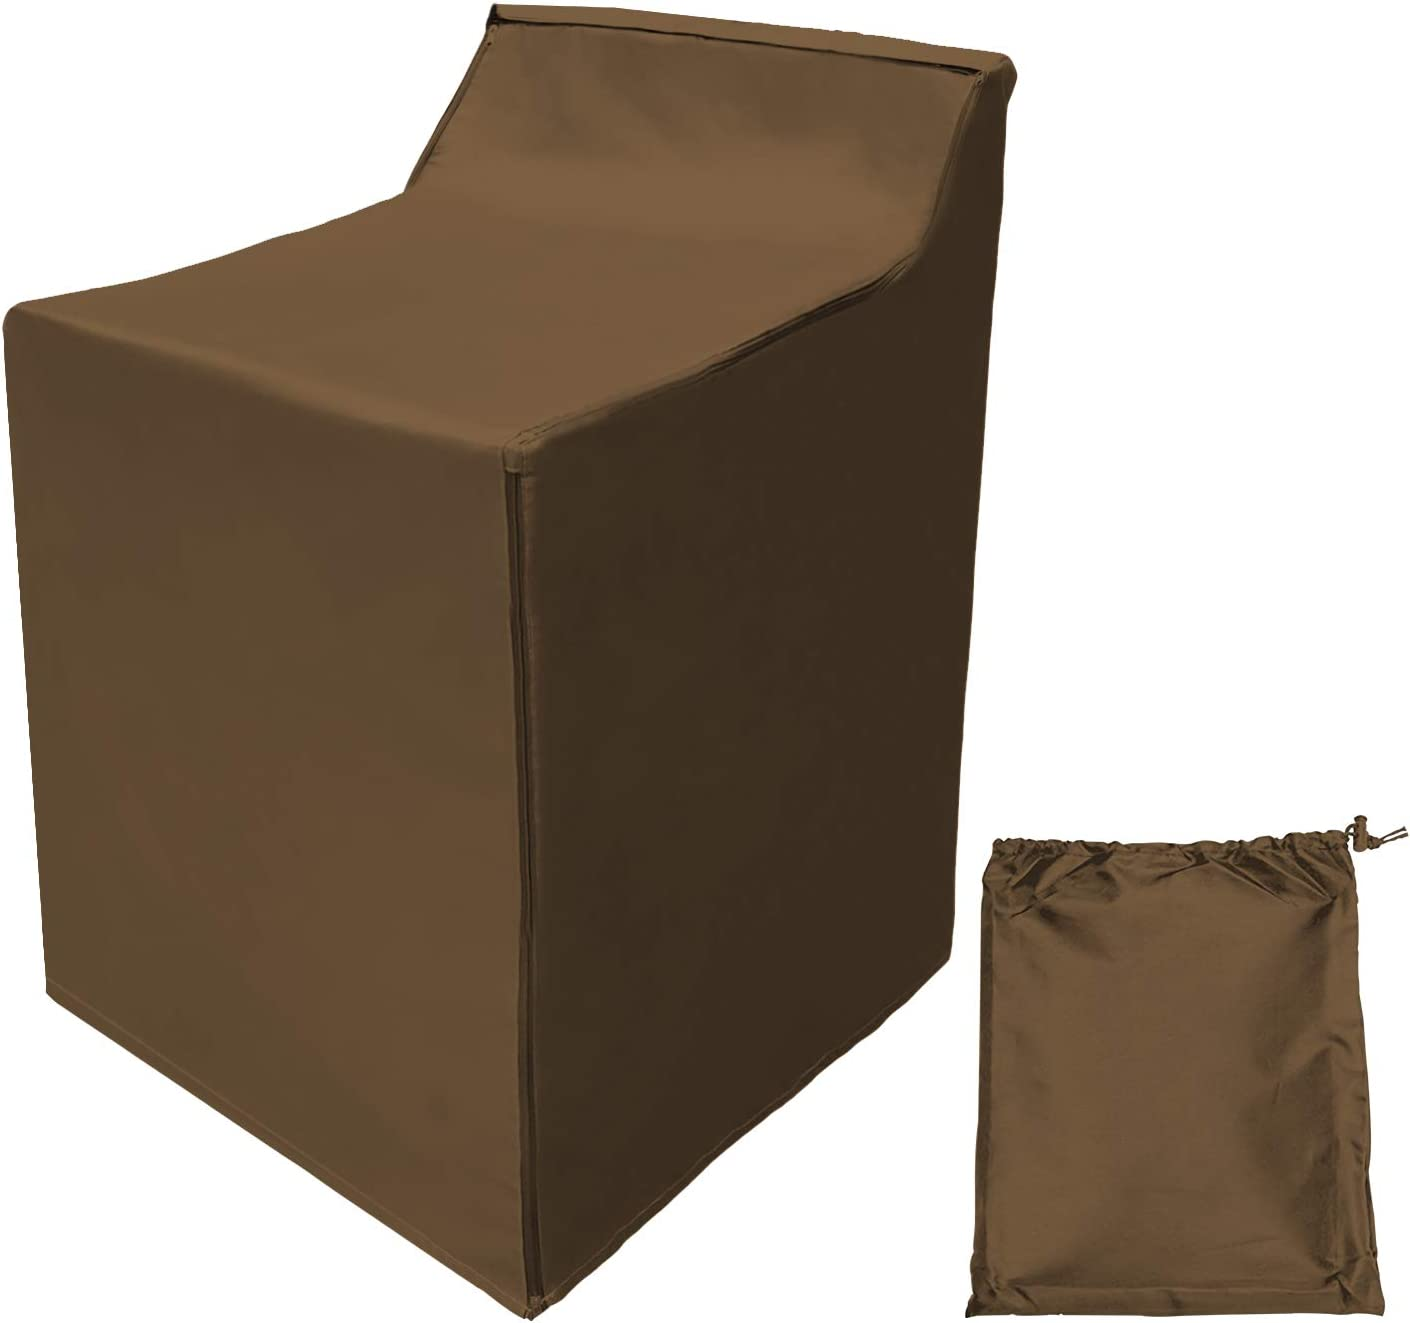 """Covolo Washing Machine Cover,Outdoor/Indoor Washer and Dryer Cover Large 29""""W x 28""""D x 40""""H,Fit Most Top Load or Front Load Washers and Dryers,All Weather Protection khaki Coated"""